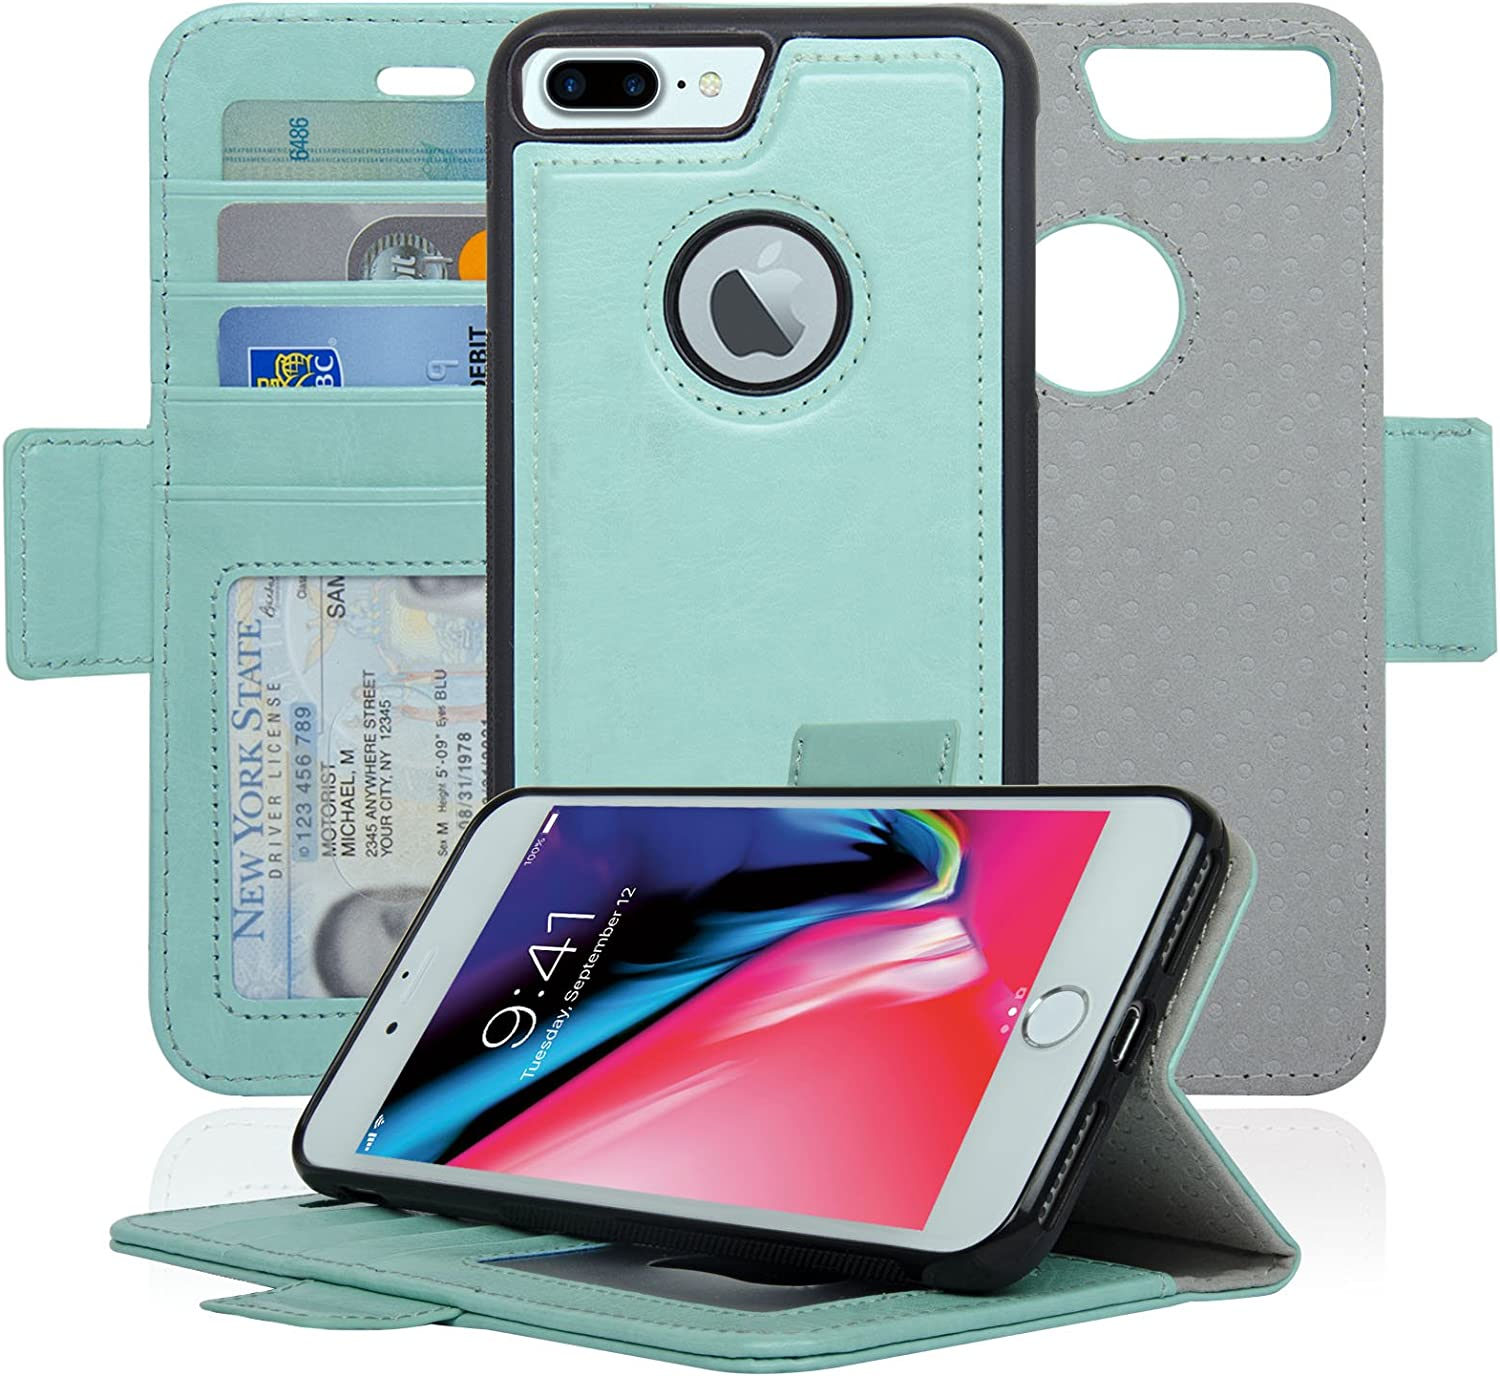 Vajio Series RFID Protection Navor Detachable Magnetic Wallet Case and Universal Car Mount Compatible for iPhone 8 Plus -Rose Gold